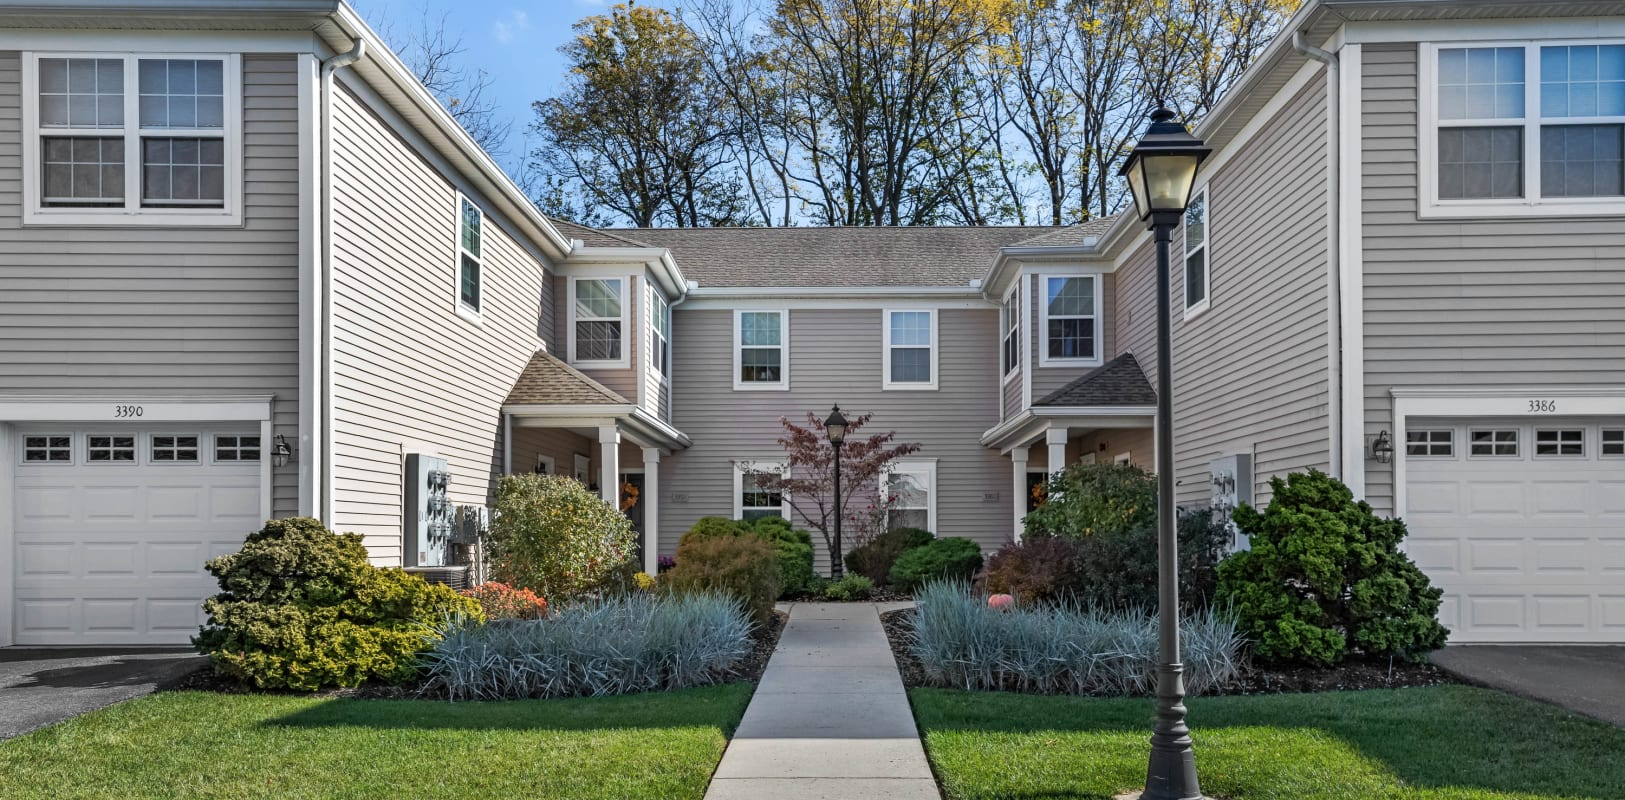 Professionally maintained landscaping and clean sidewalks outside resident buildings at Hanover Glen in Bethlehem, Pennsylvania